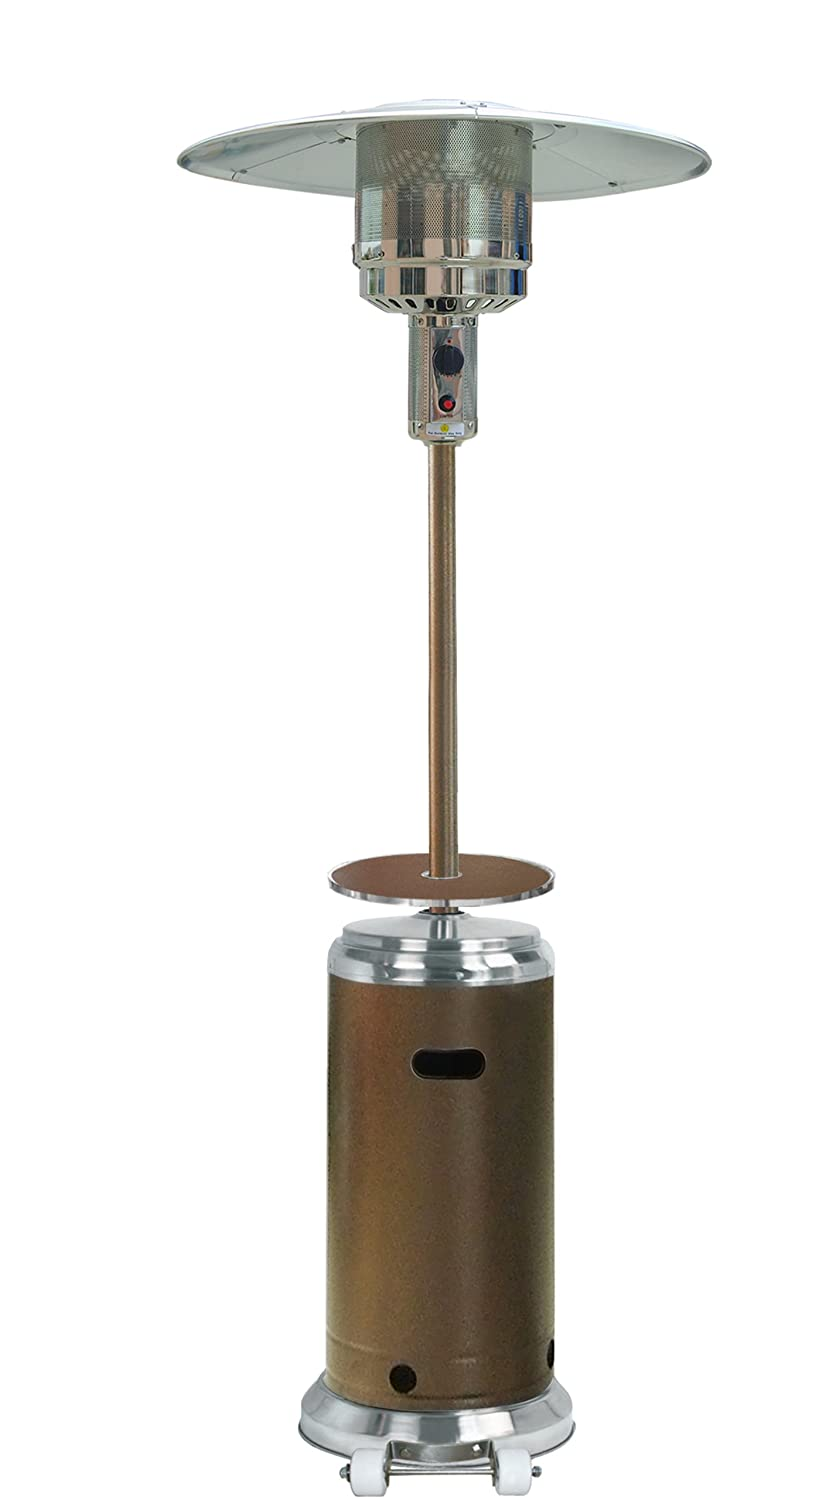 "Hiland HLDS01-SSHGT Patio Heater, 87"" Hammered Bronze/SS"